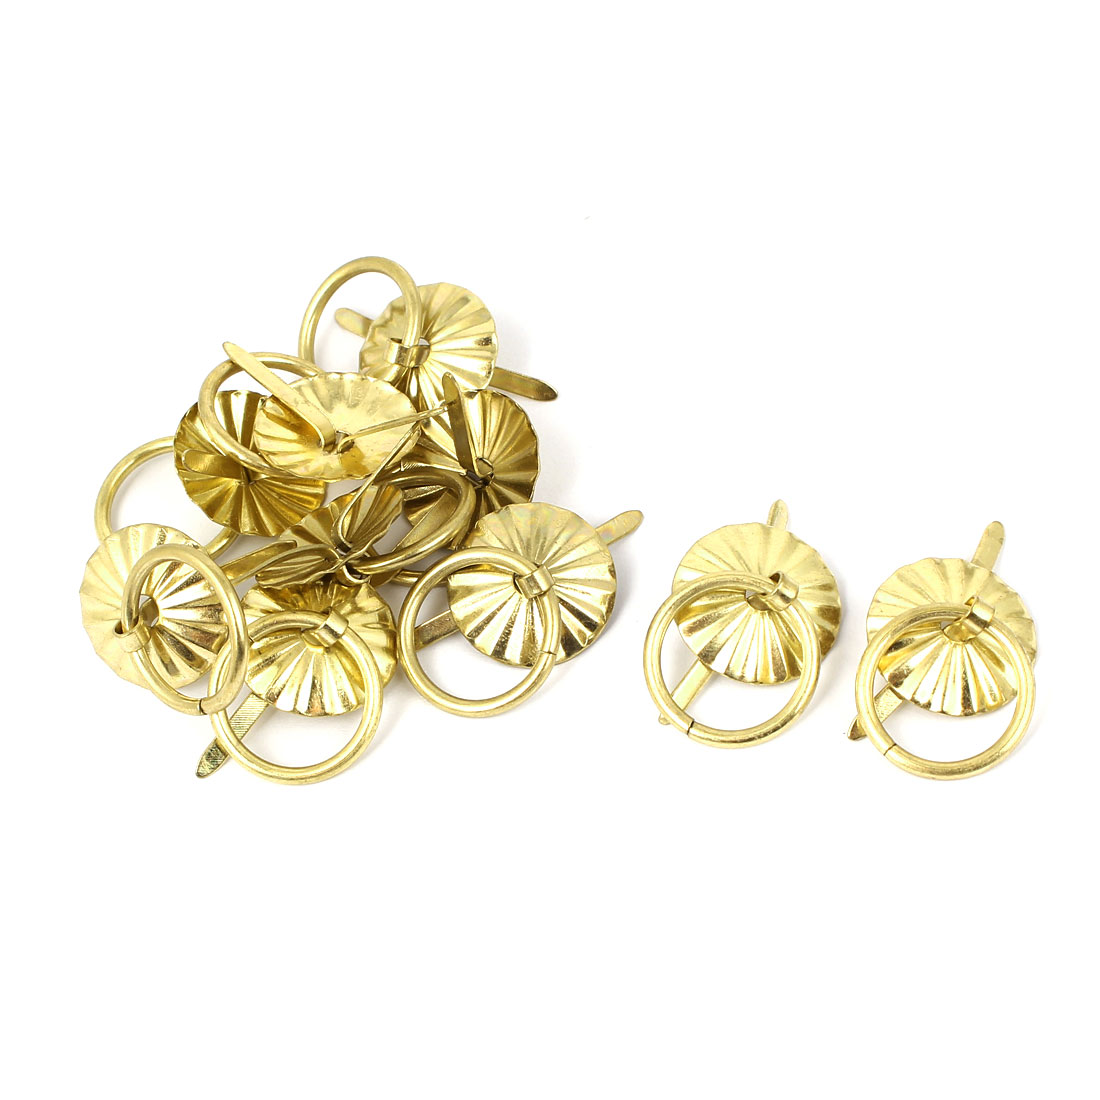 Jewelry Cabinet Wooden Box Drawer Metal Pull Handles Yellow 10 Pcs